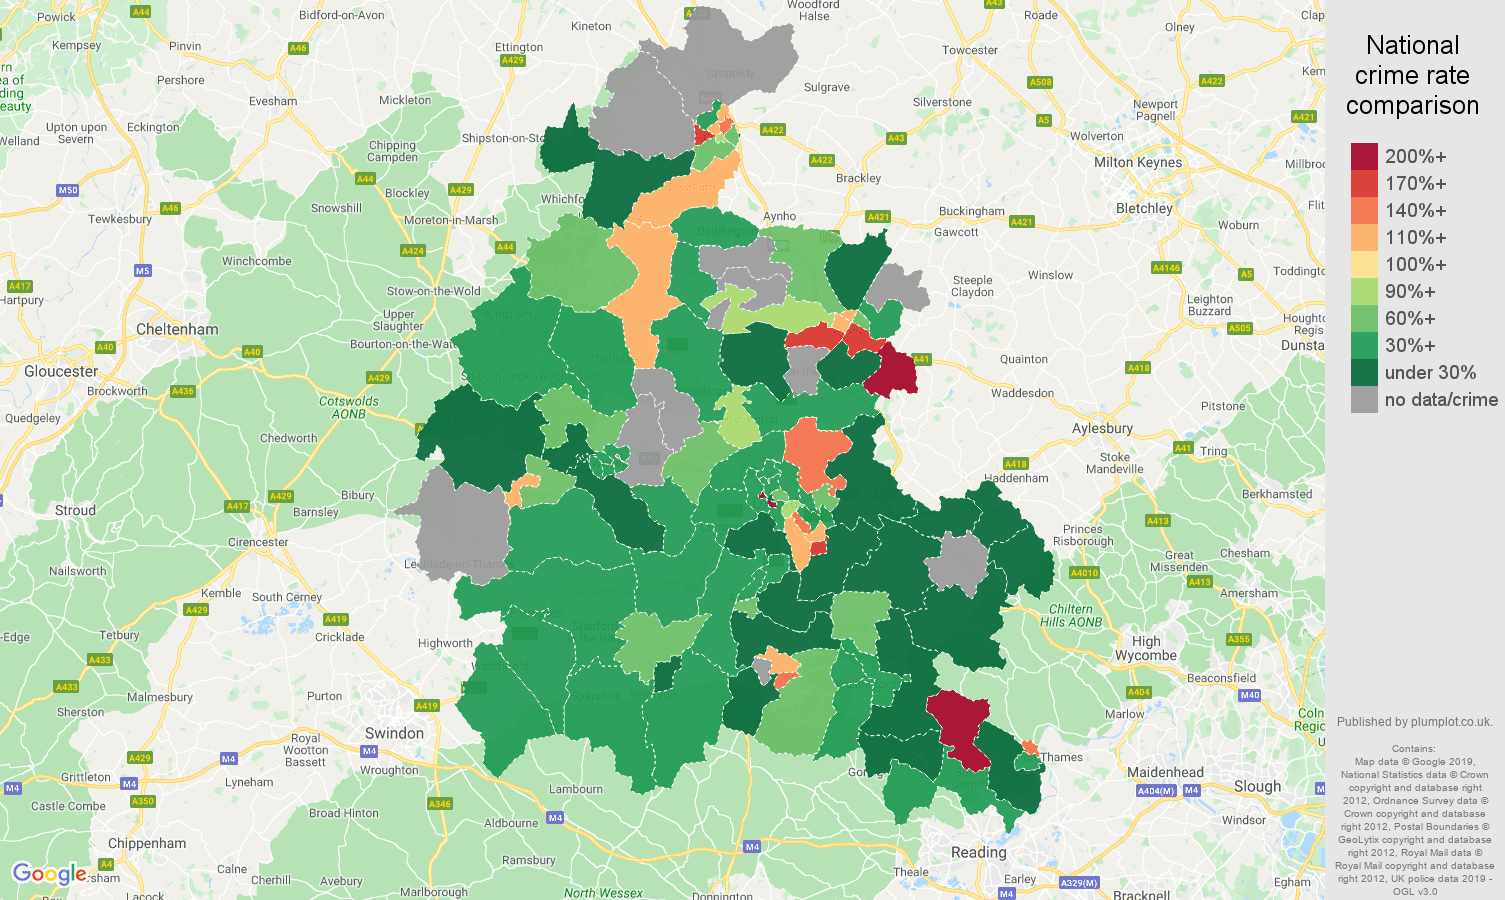 Oxfordshire other crime rate comparison map